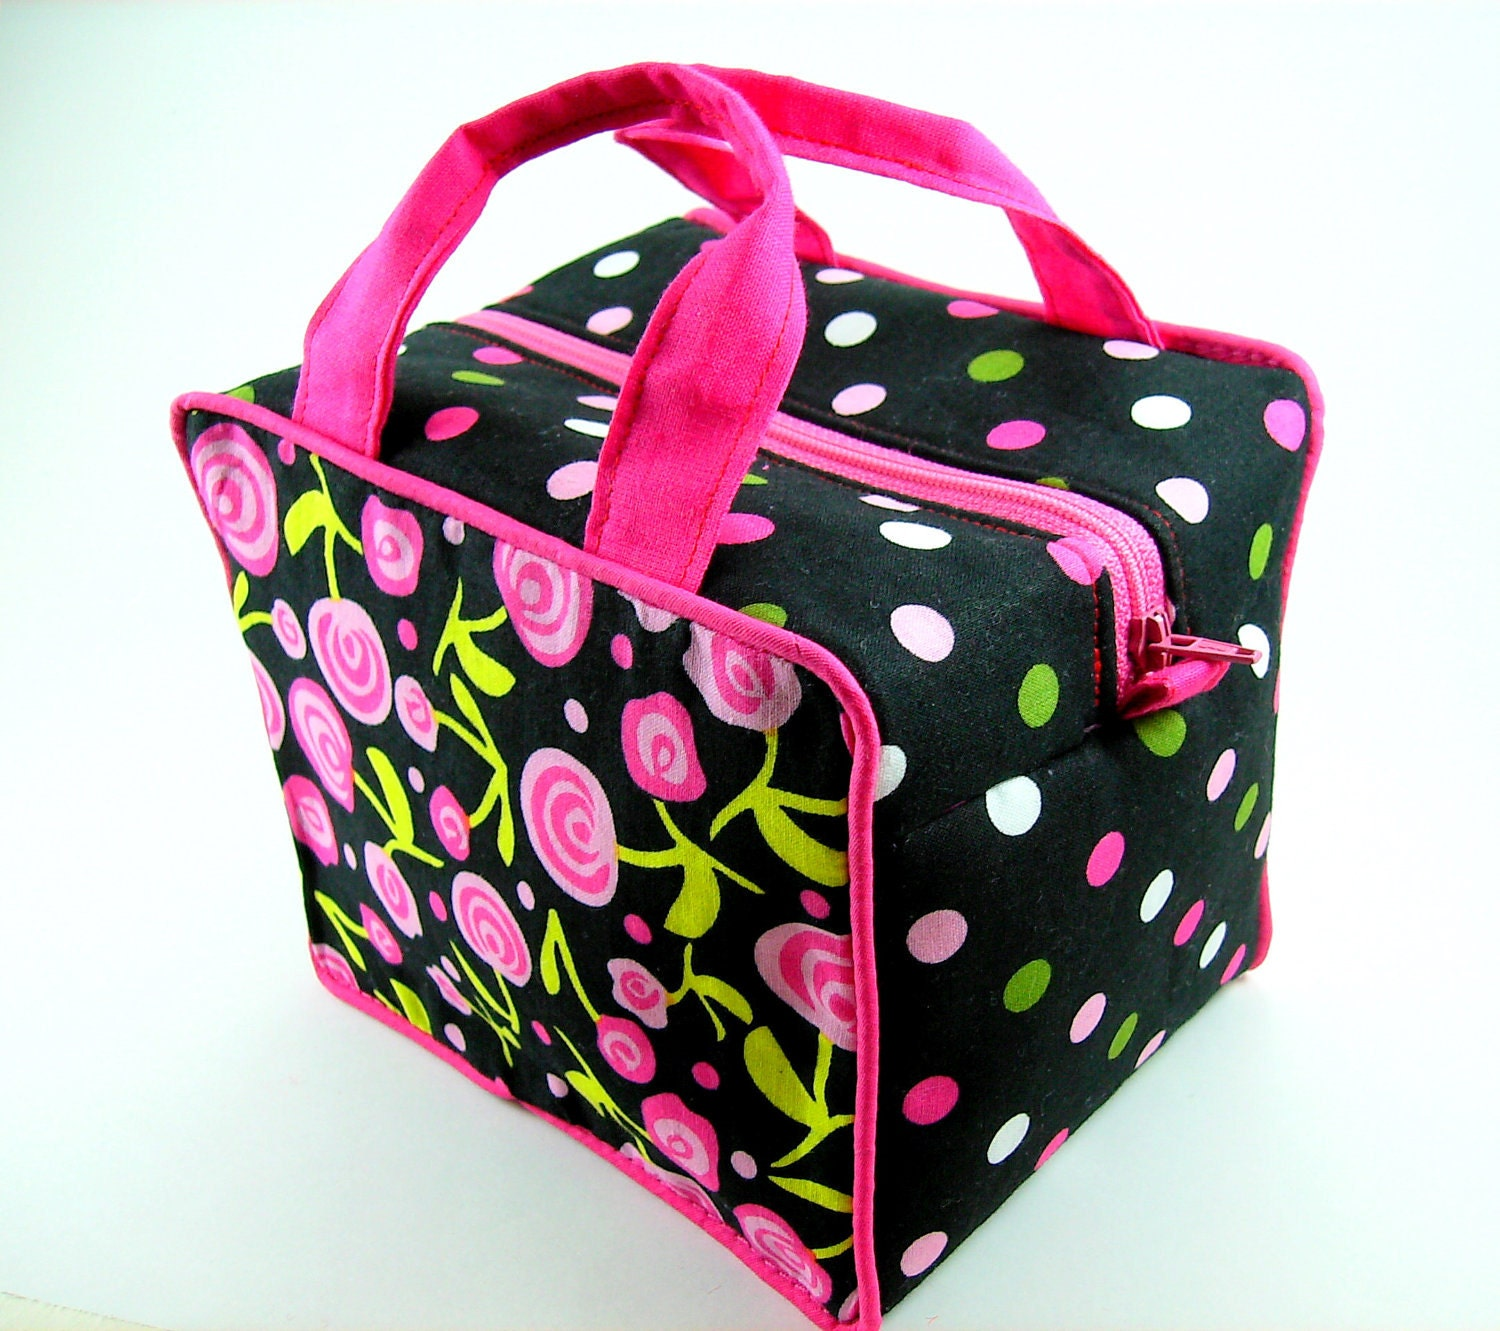 Boxy Cosmetic Bag Sewing Pattern Pdf Tutorial No Exposed